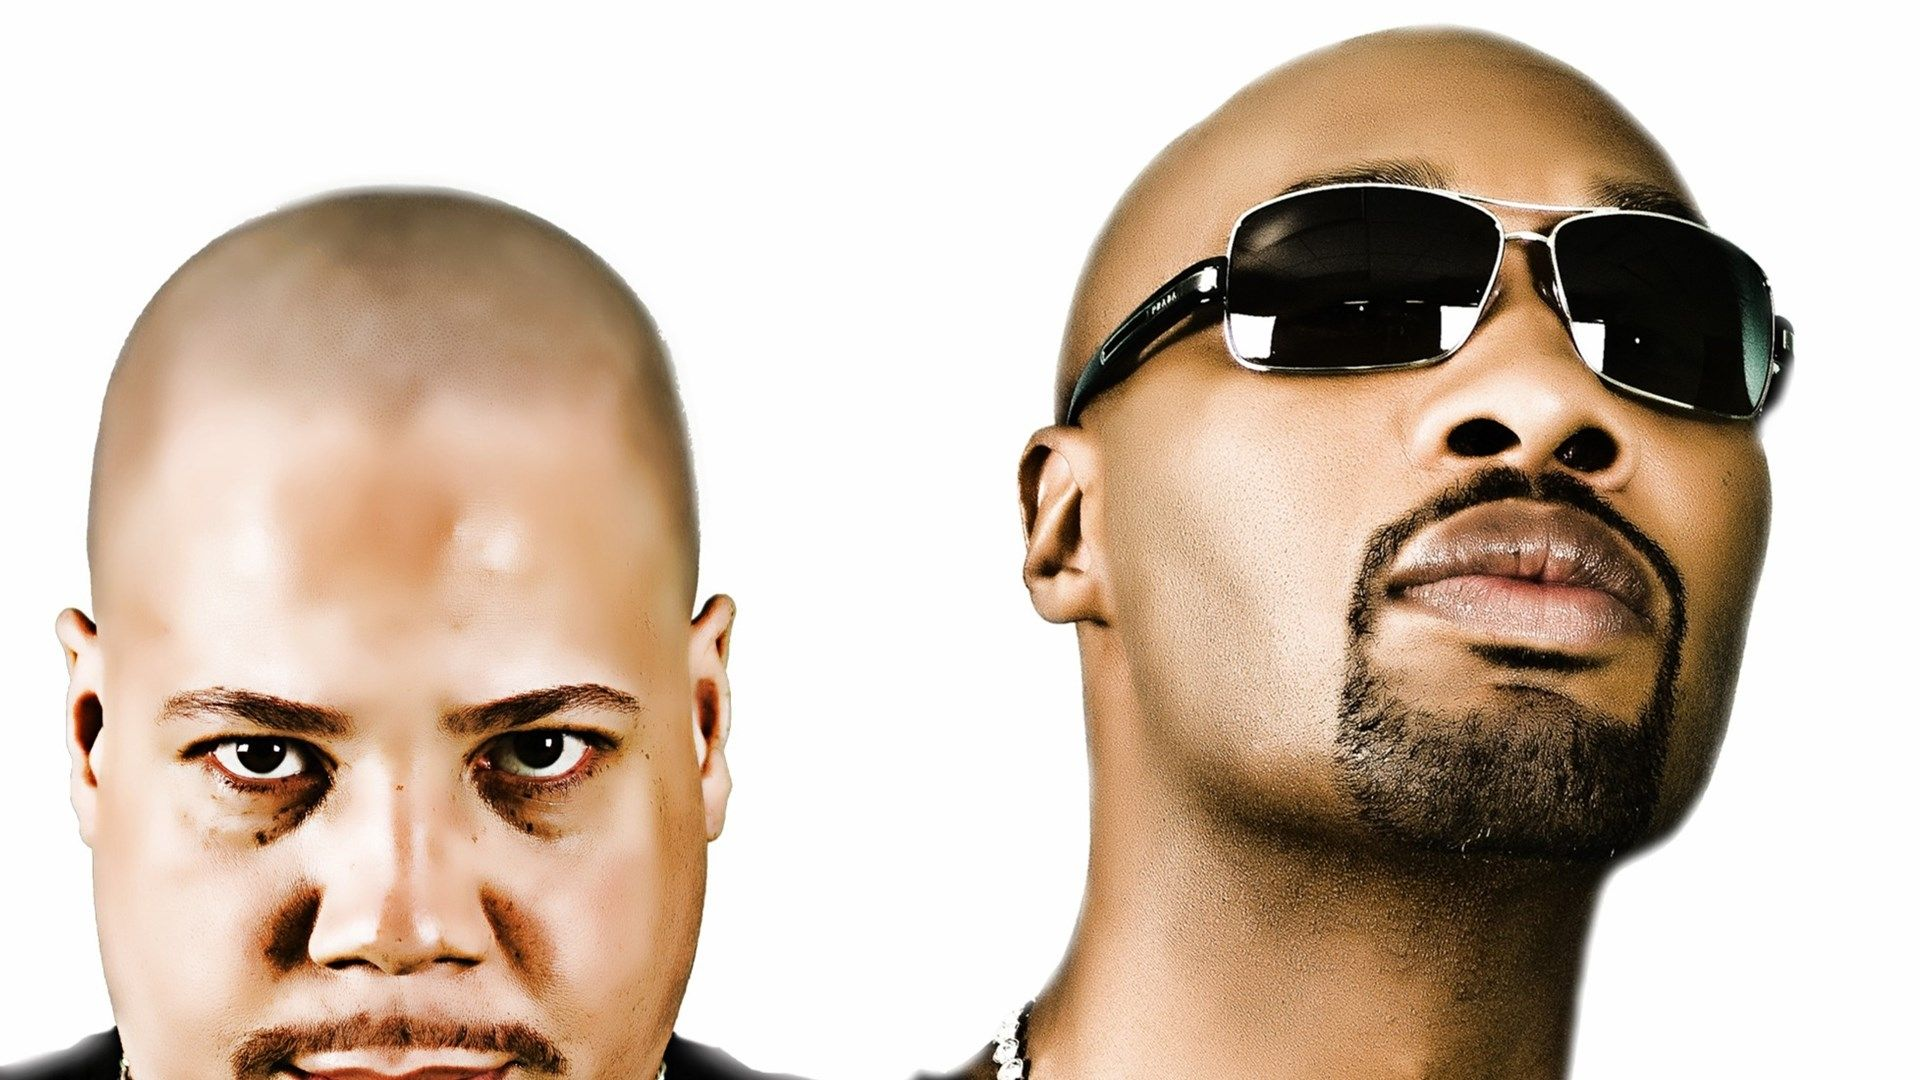 the outhere brothers, bald, glasses - http://www.wallpapers4u.org/the-outhere-brothers-bald-glasses/